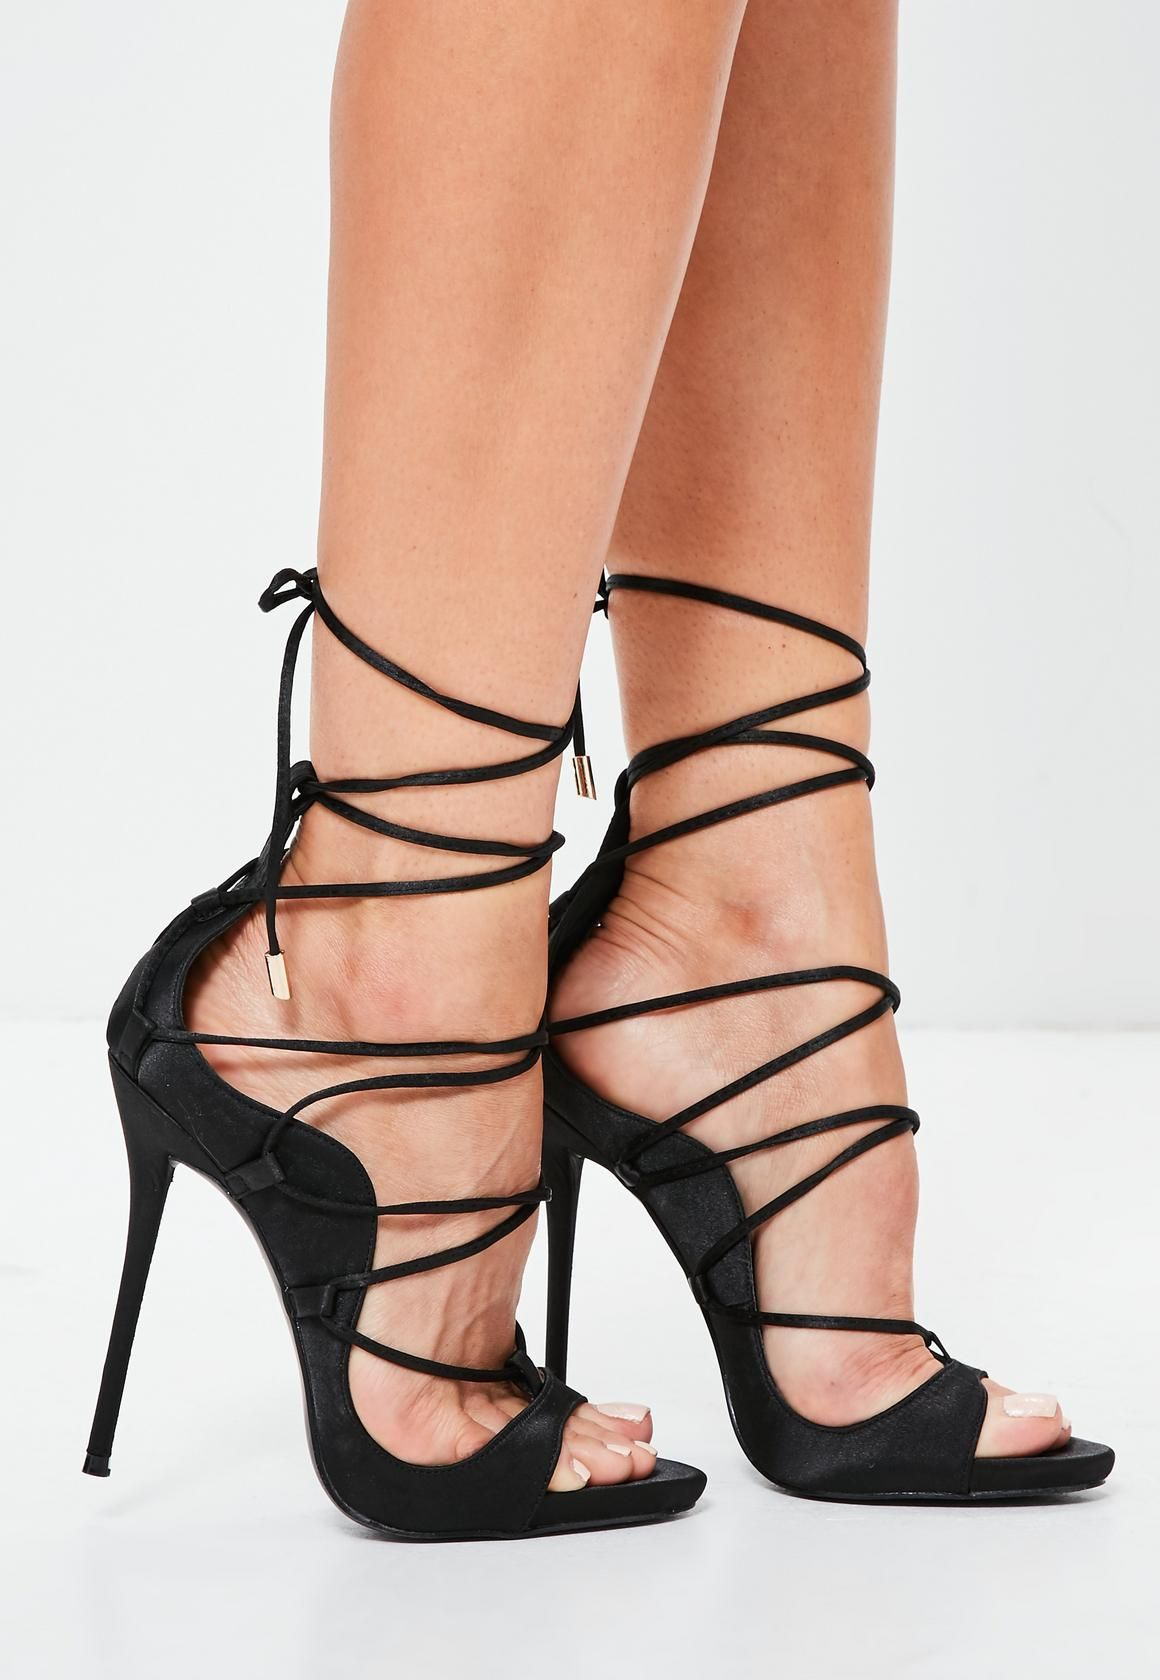 ca1dd78dac7 Missguided - Black Satin Gladiator Sandals | FOOTWEAR in 2019 ...